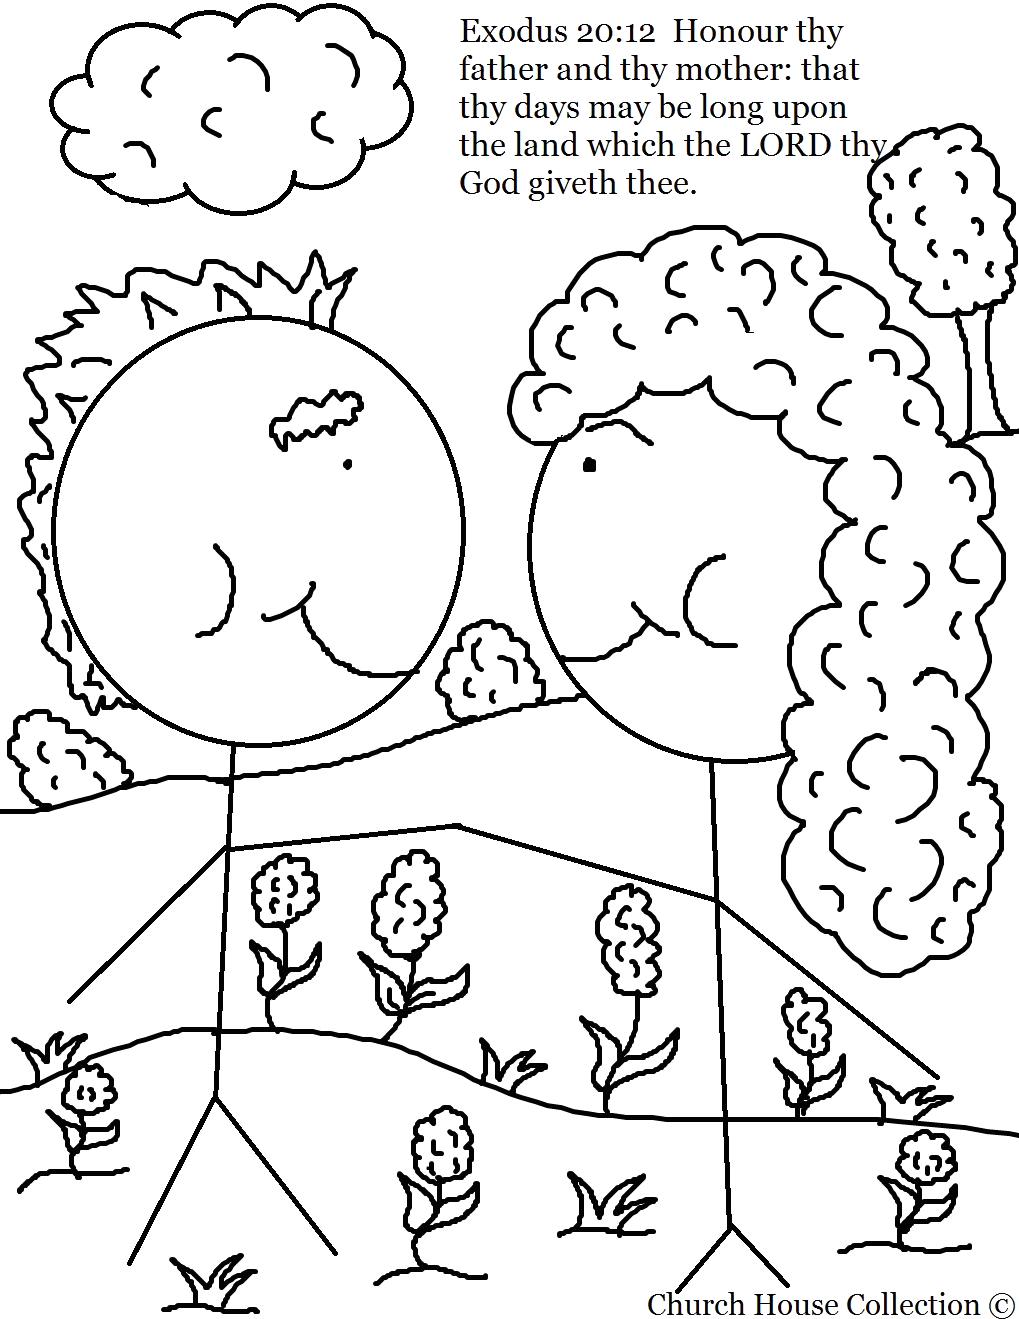 Honor Thy Father and Mother Coloring Pages Church House Collection Blog Honor Your Mother and Father